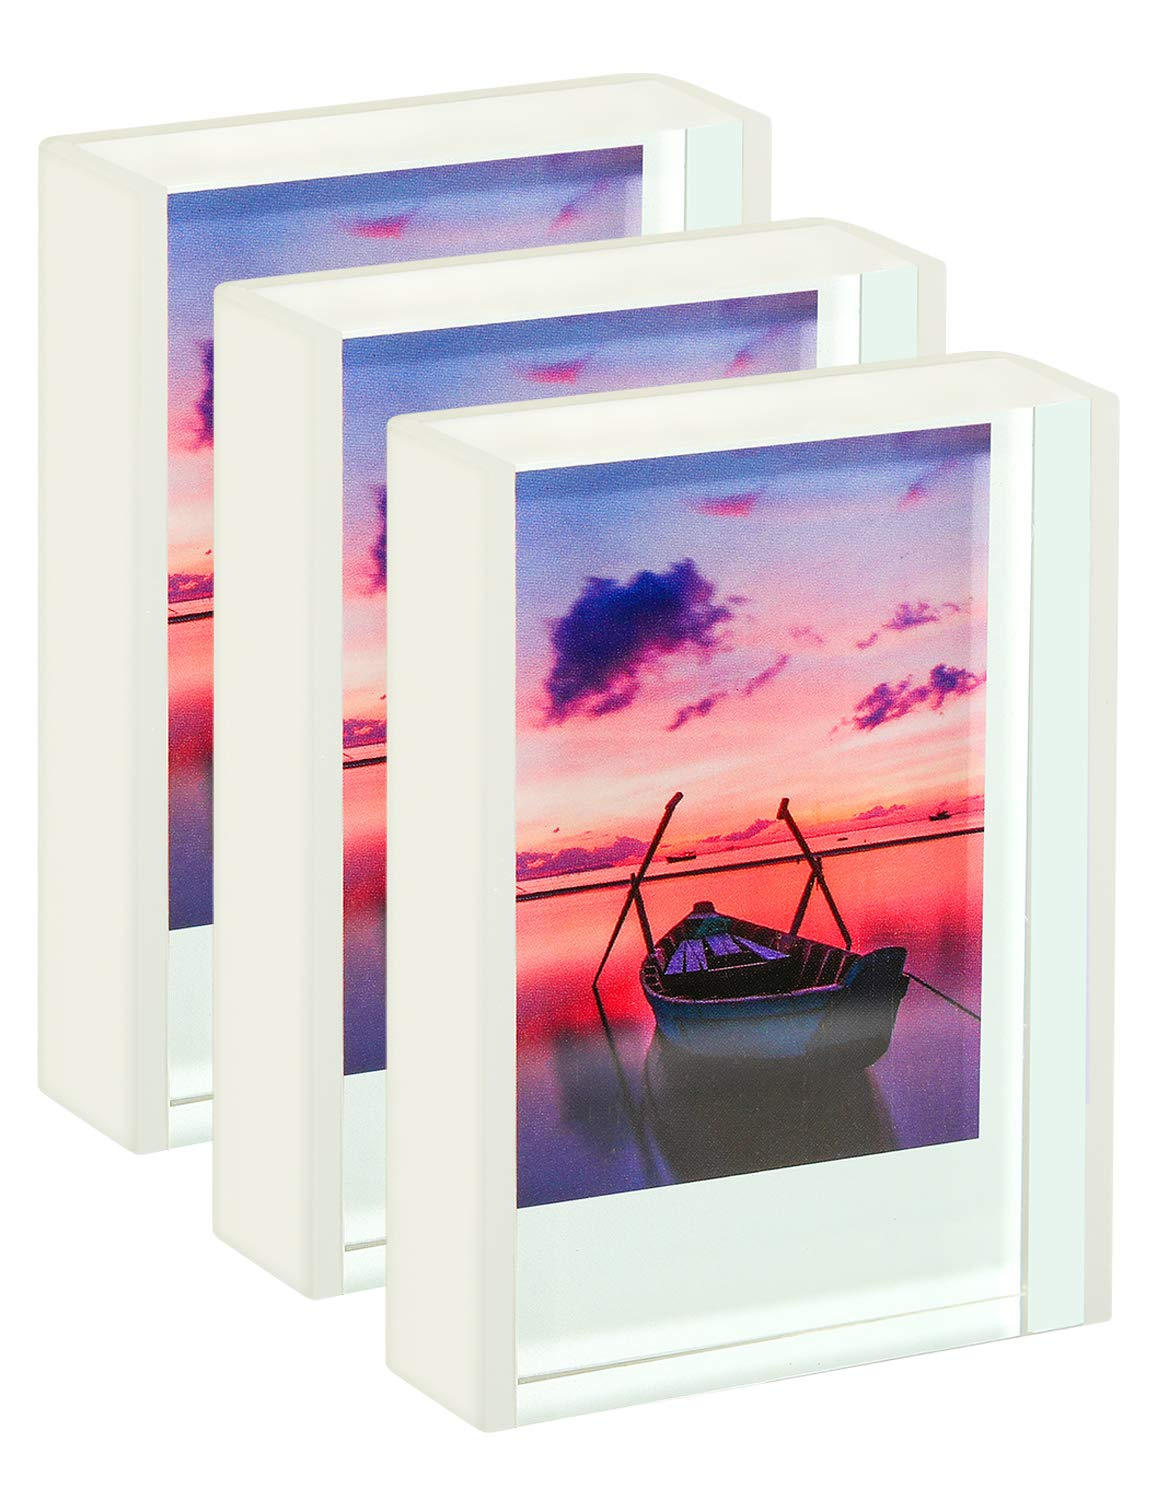 WINKINE Acrylic Small Picture Frame 2x3, 3 Pack Instax Mini Clear Cute Picture Frame for Tabletop & Desktop, Freestanding Sliding Photo Display for Fujifilm & Polaroid Film by WINKINE